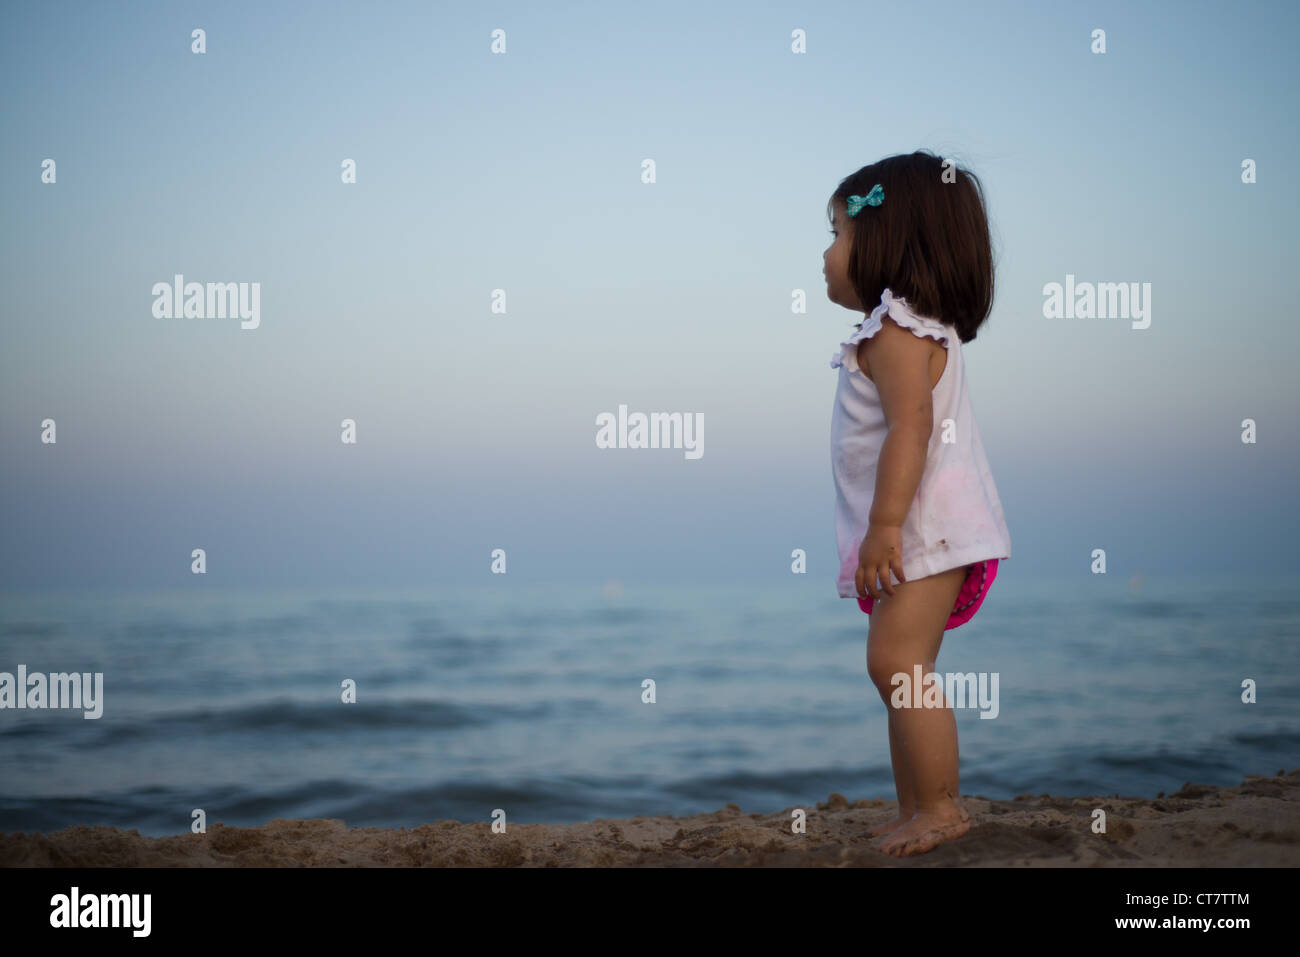 Young girl looking out across open water Stock Photo